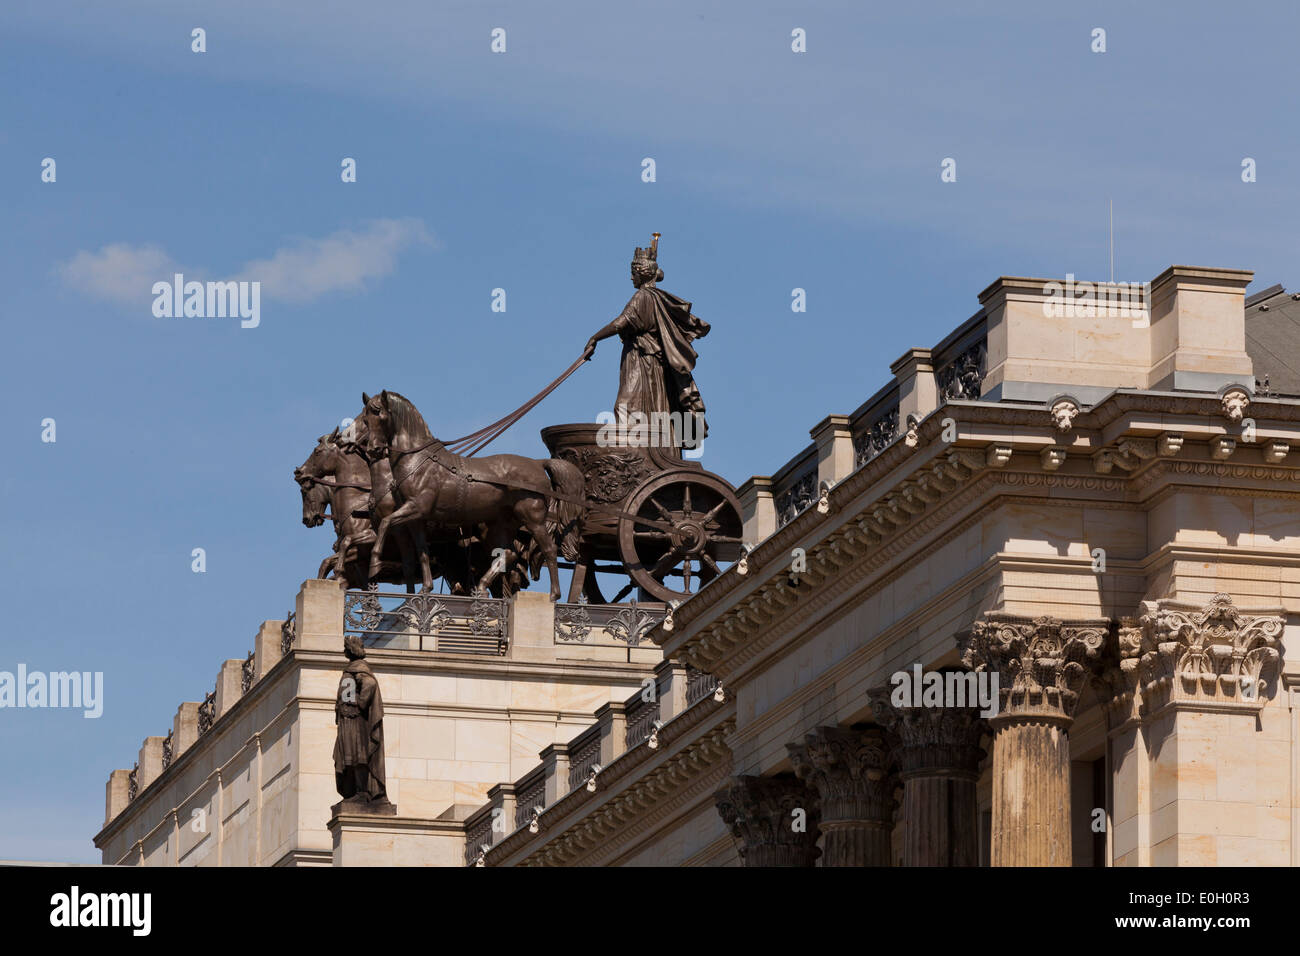 Quadriga on Brunswick Palace, reconstruction of the historic facade after damage during world war II and subsequent demolition, - Stock Image